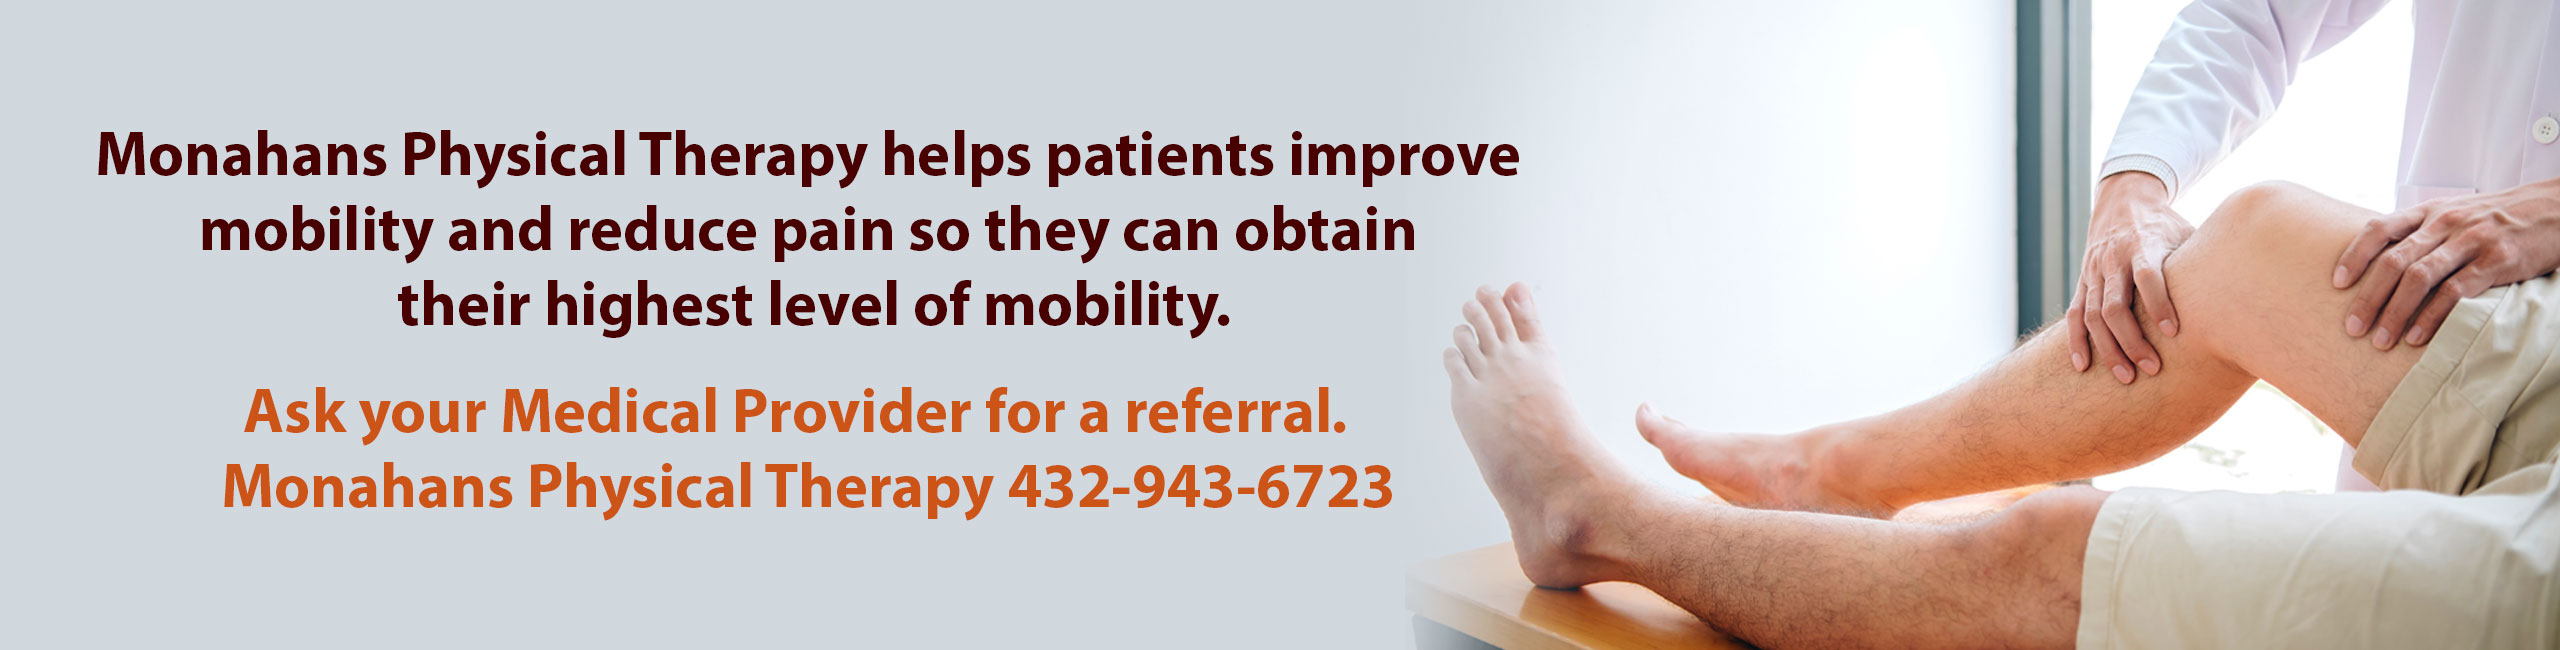 Banner ad shows a doctor massaging the right knee of a patient.  The Banner reads  Monahans Physical Therapy helps patients improve mobility and reduce pain so they can obtain their highest level of mobility. Ask your Medical Provider for a referral. Monahans Physical Therapy 432-943-6723